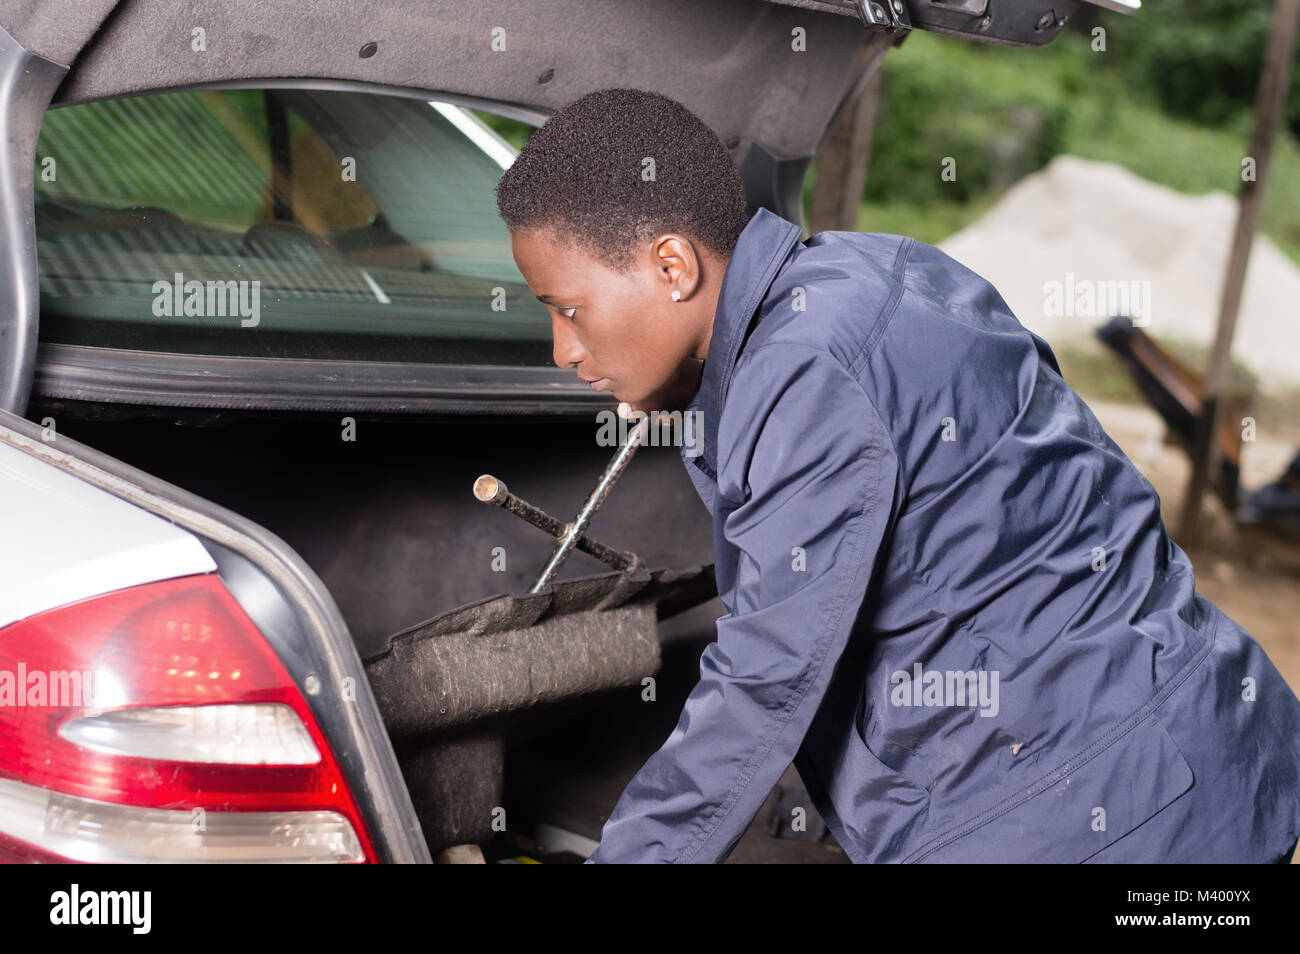 A smiling mechanic looks for her work tools in the back of a car in the garage. - Stock Image